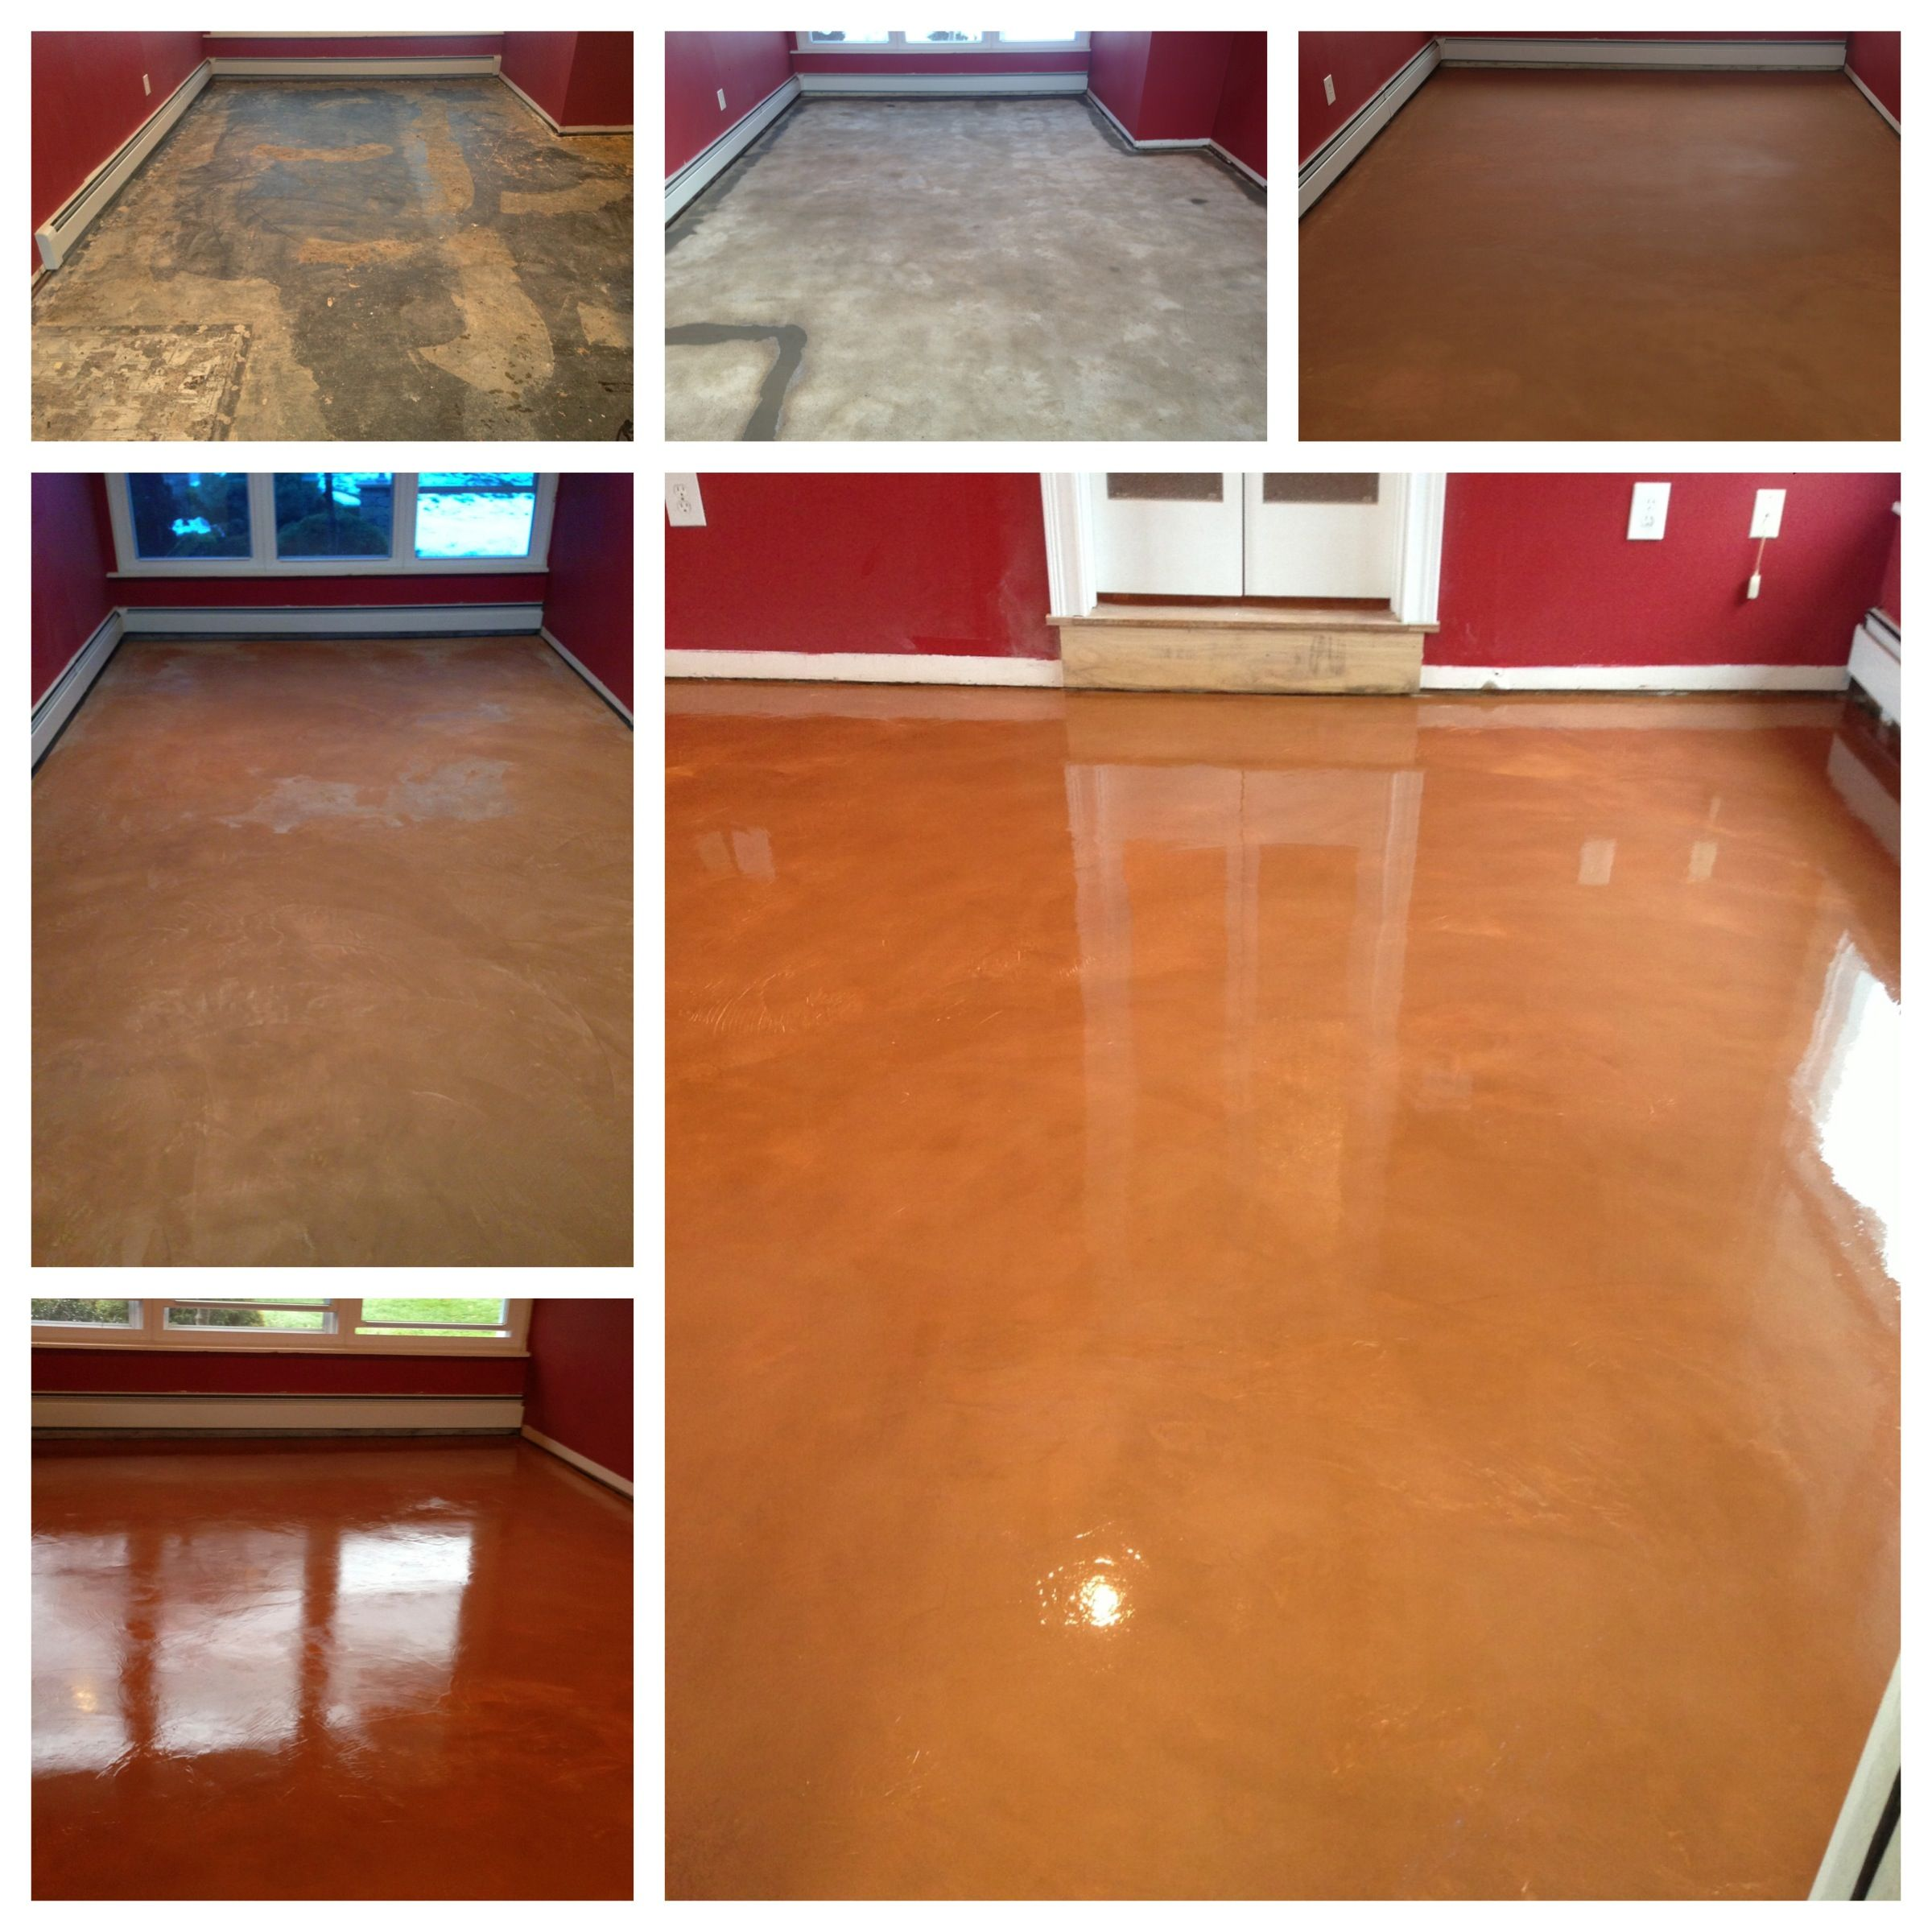 The beauty of concrete flooring 50 years of asbestos tile the beauty of concrete flooring years of asbestos tile carpet replaced with a decorative overlay easily maintained very sanitary and allergen dailygadgetfo Image collections